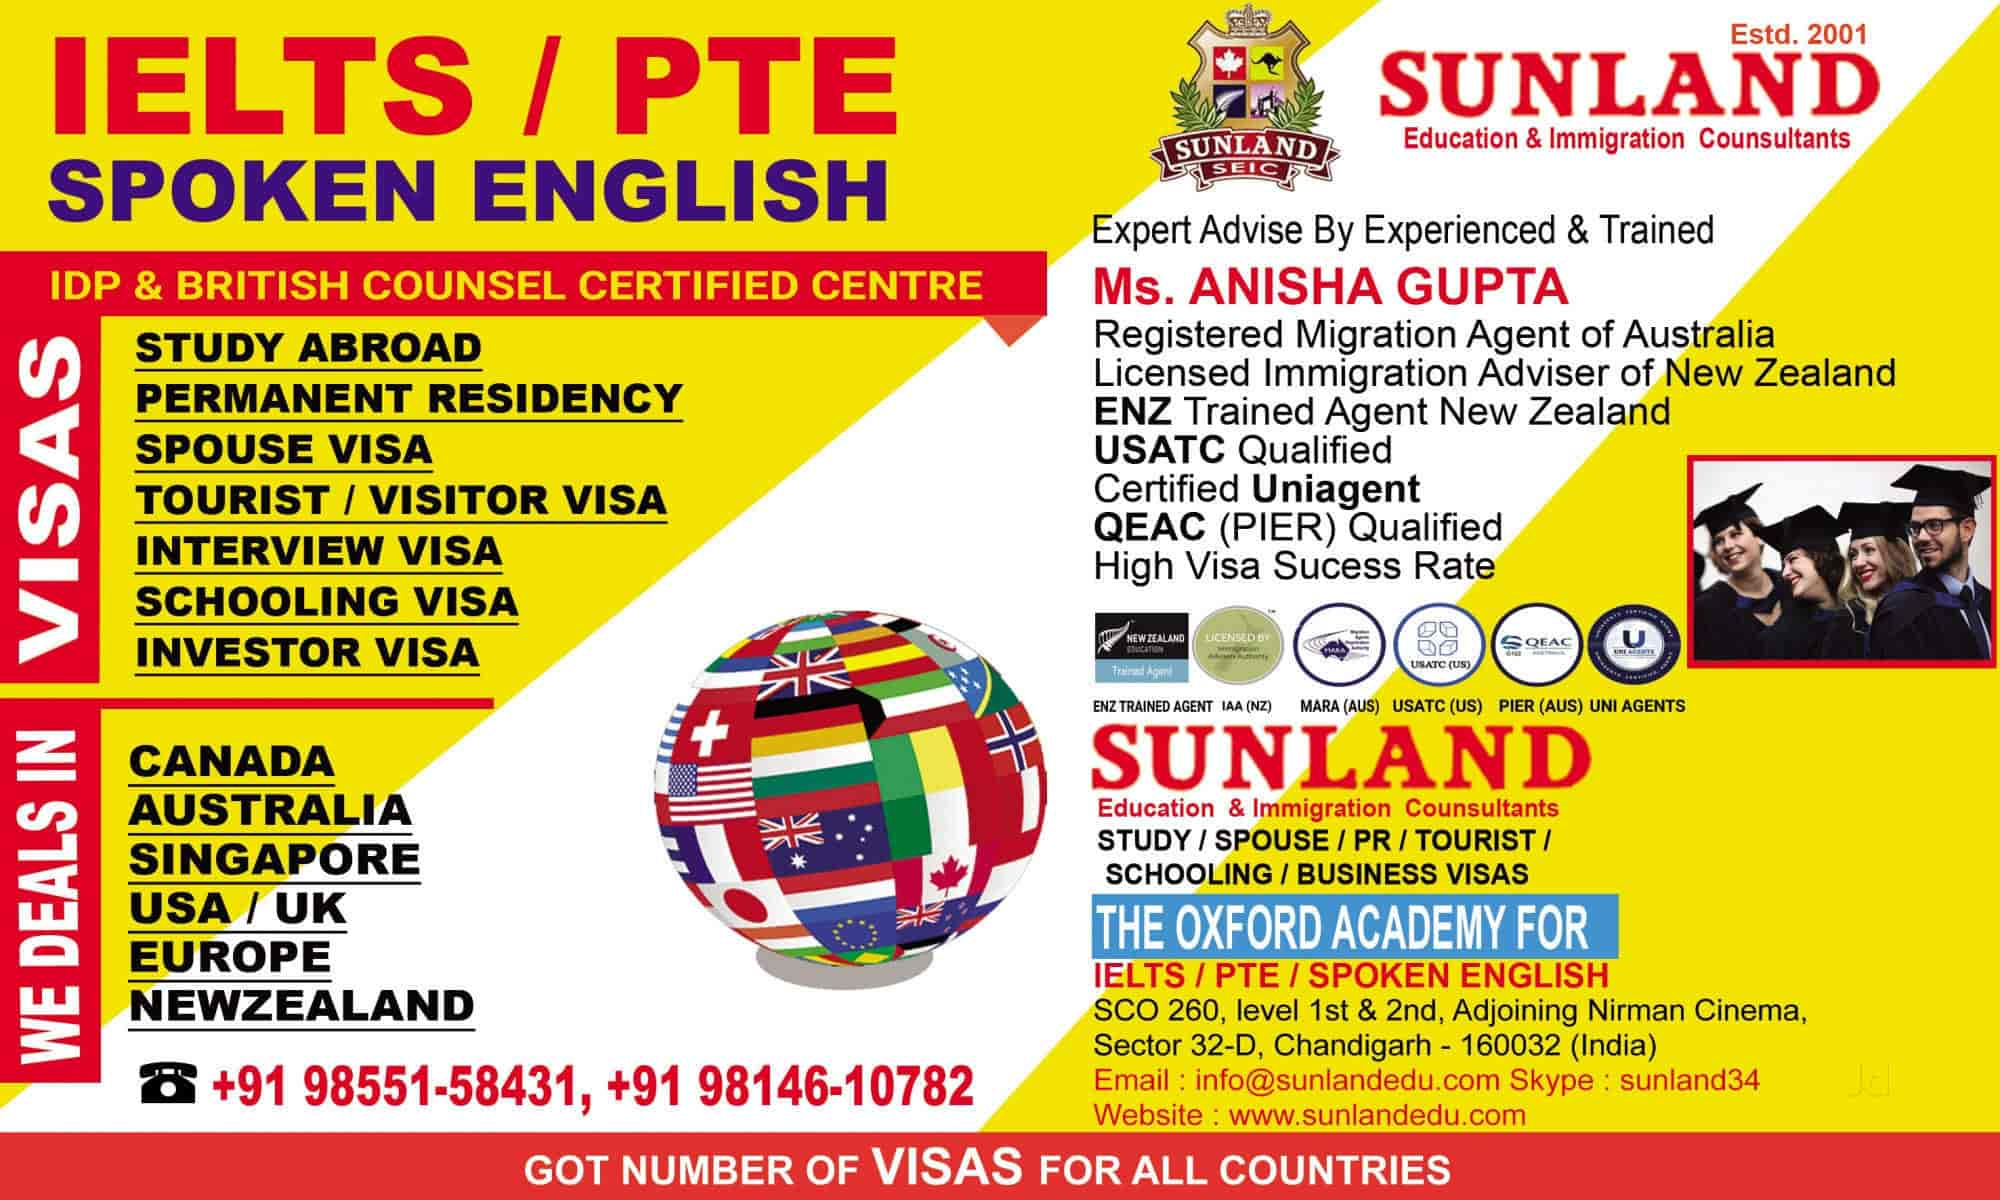 Sunland Education & Immigration Consultants, Sector 32d